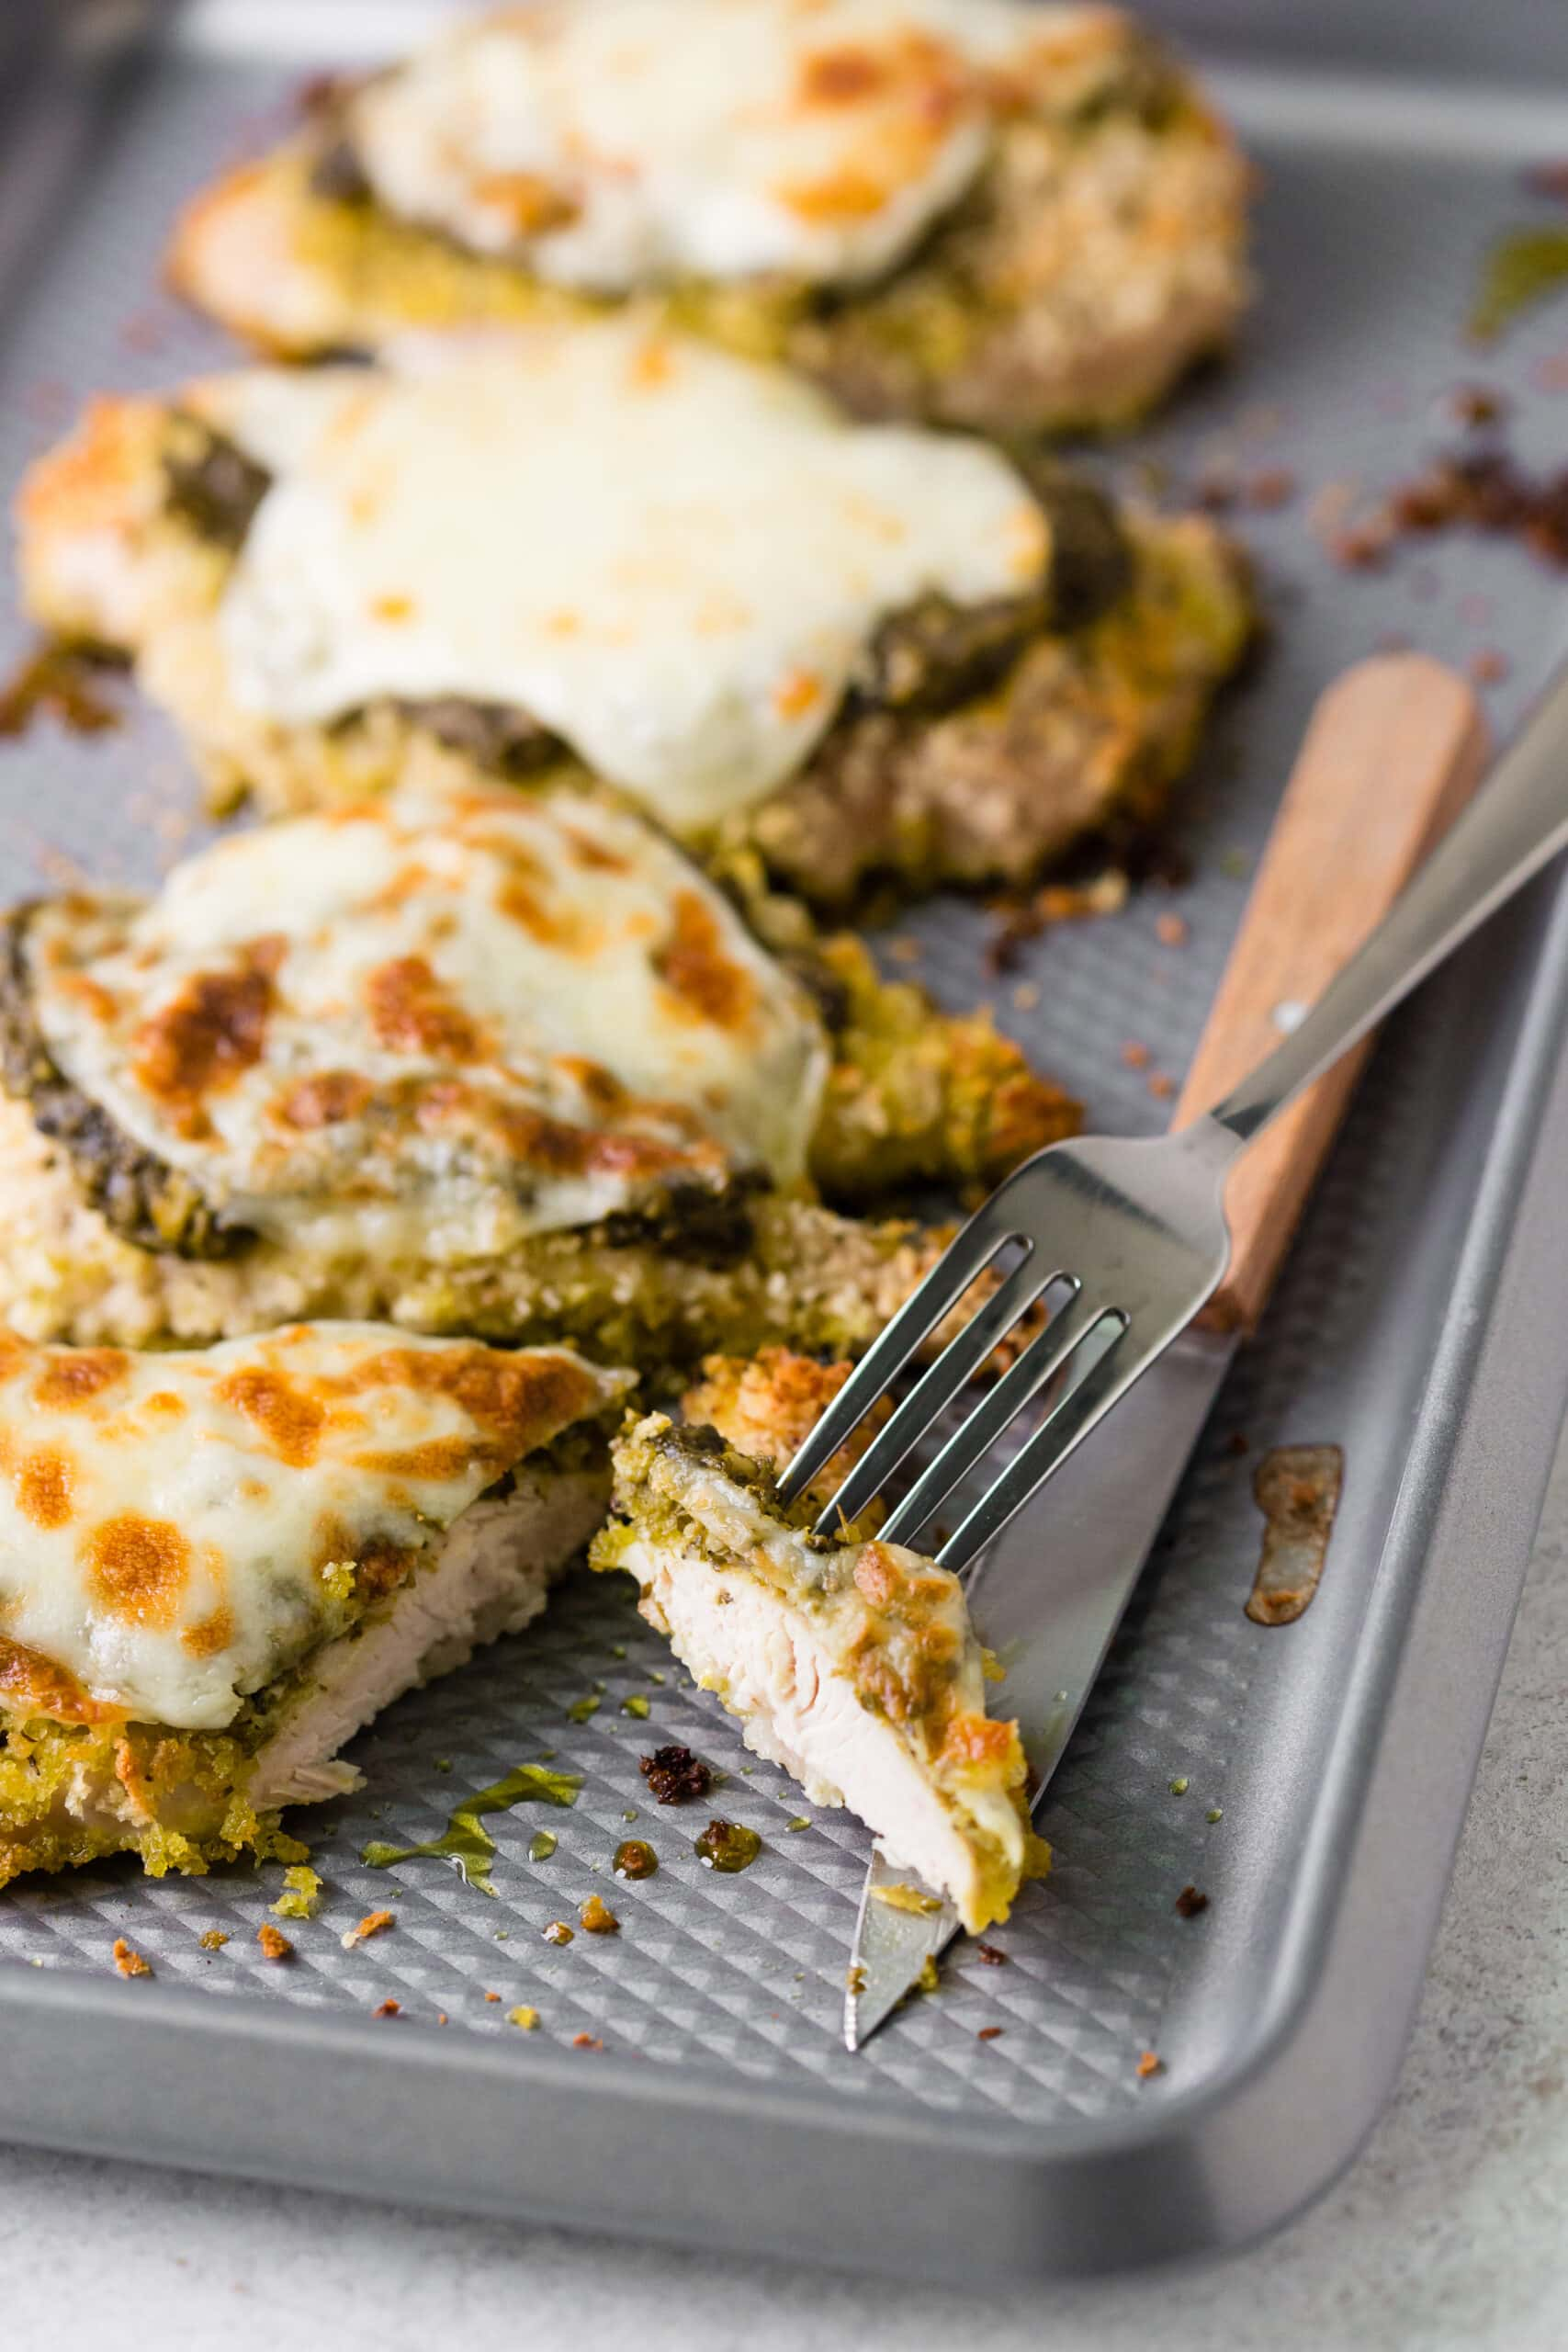 Baked Chicken topped with cheese and pesto cut on a tray